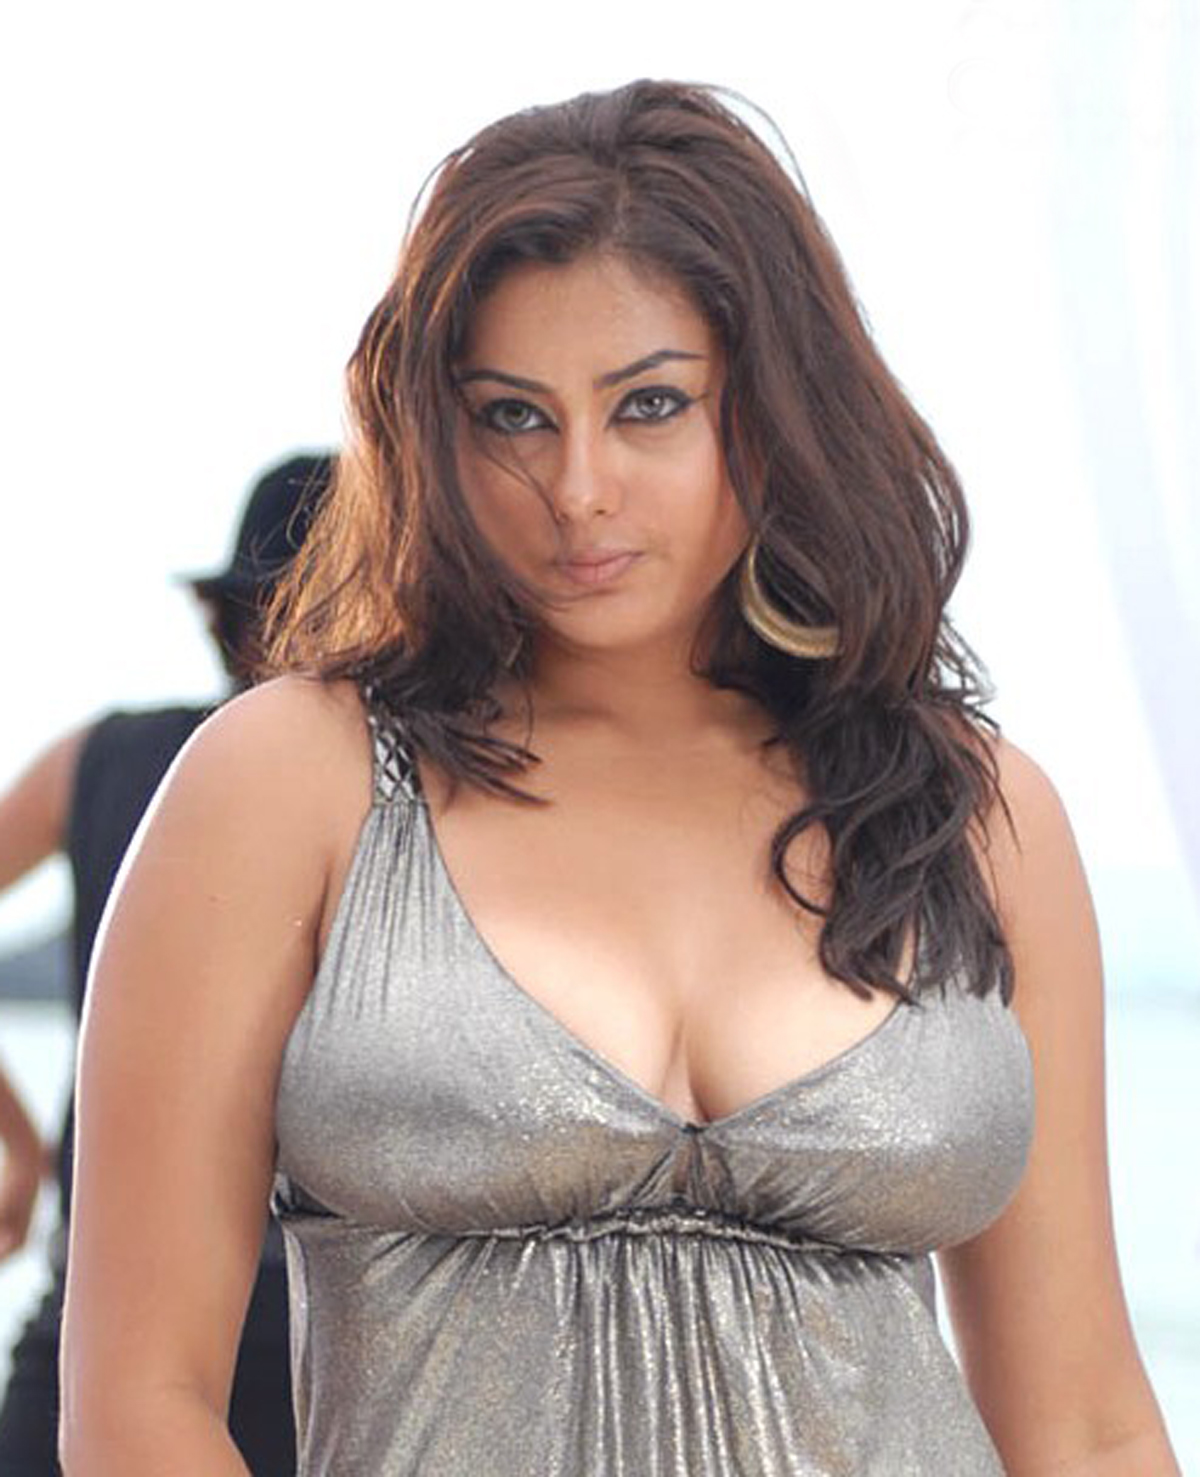 South Indian Actress Hot Images Wallpapers Photos Hot In -4424